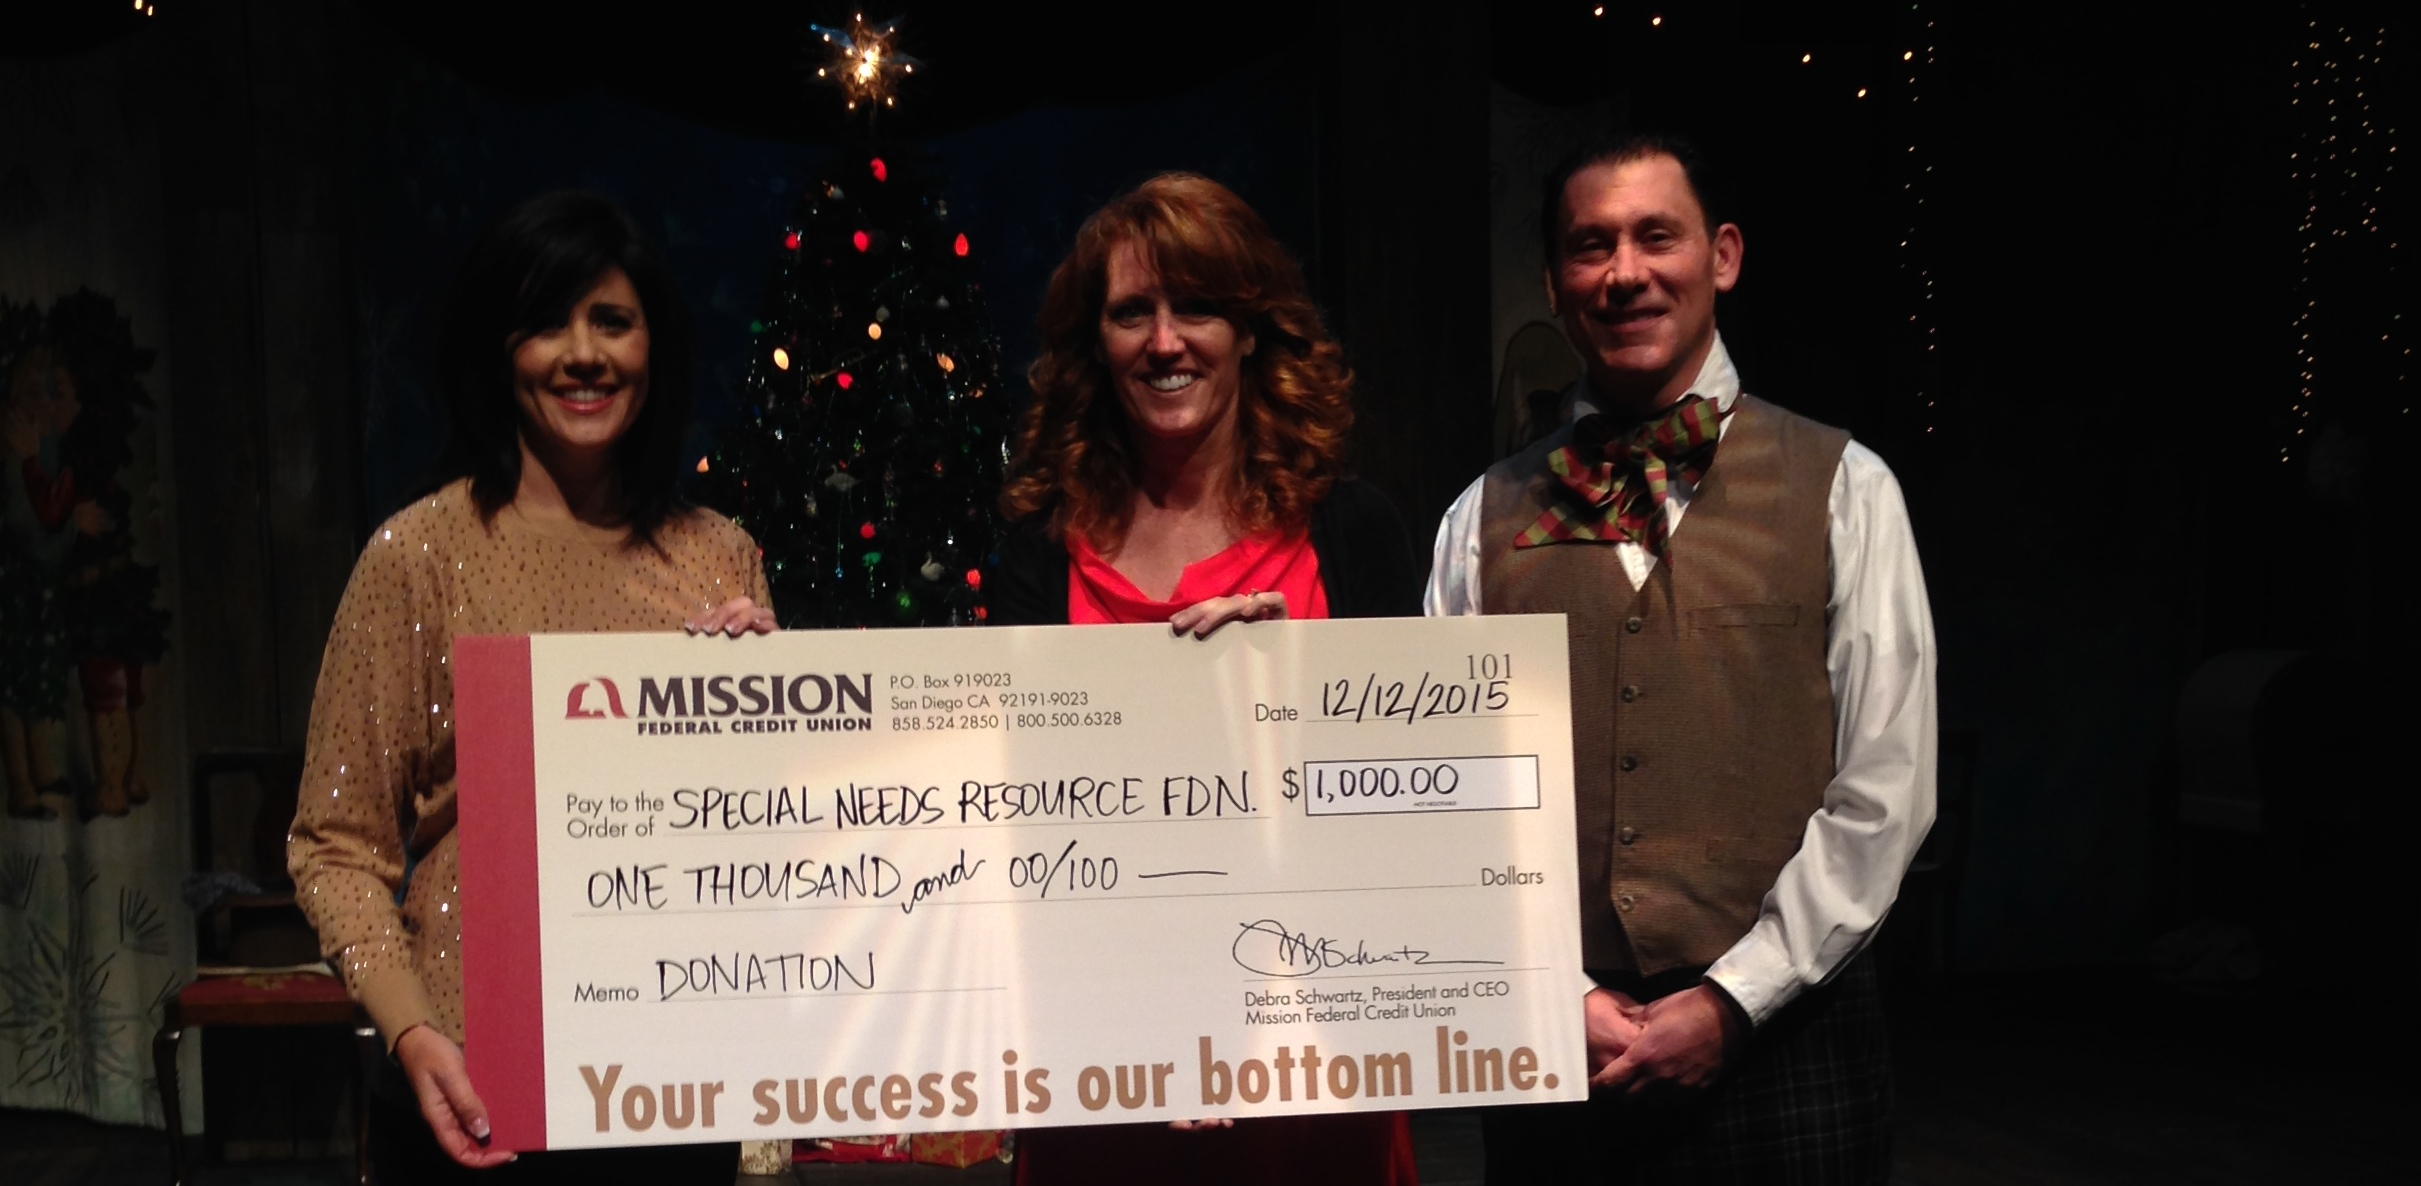 Thank You Mission Federal Credit Union!